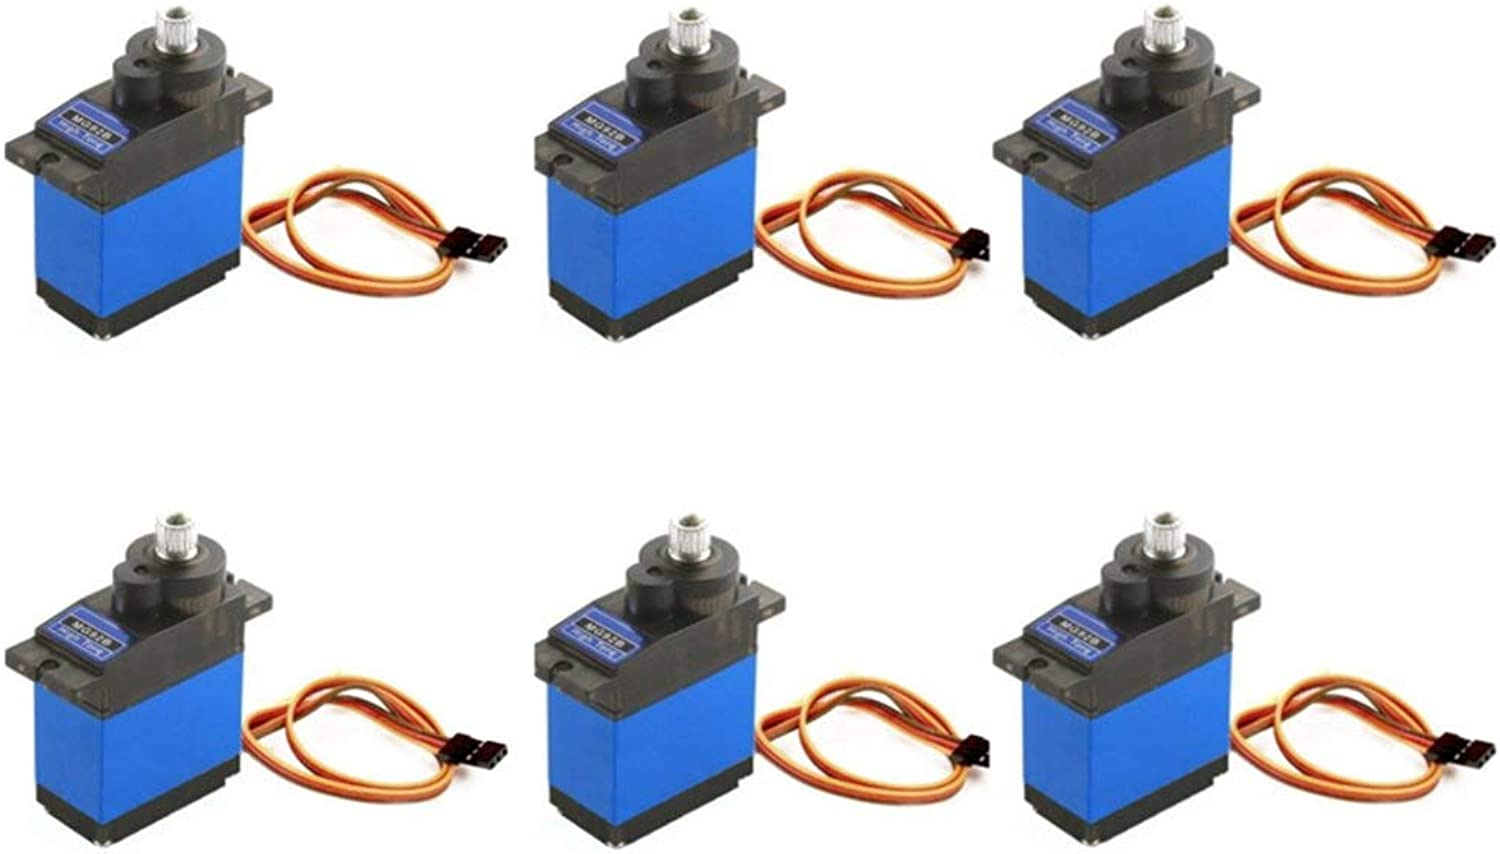 LaDicha 6PCS MG92B Robot 13.8g 3.5KG Torque Metal Gear Digital Servo For RC Airplane